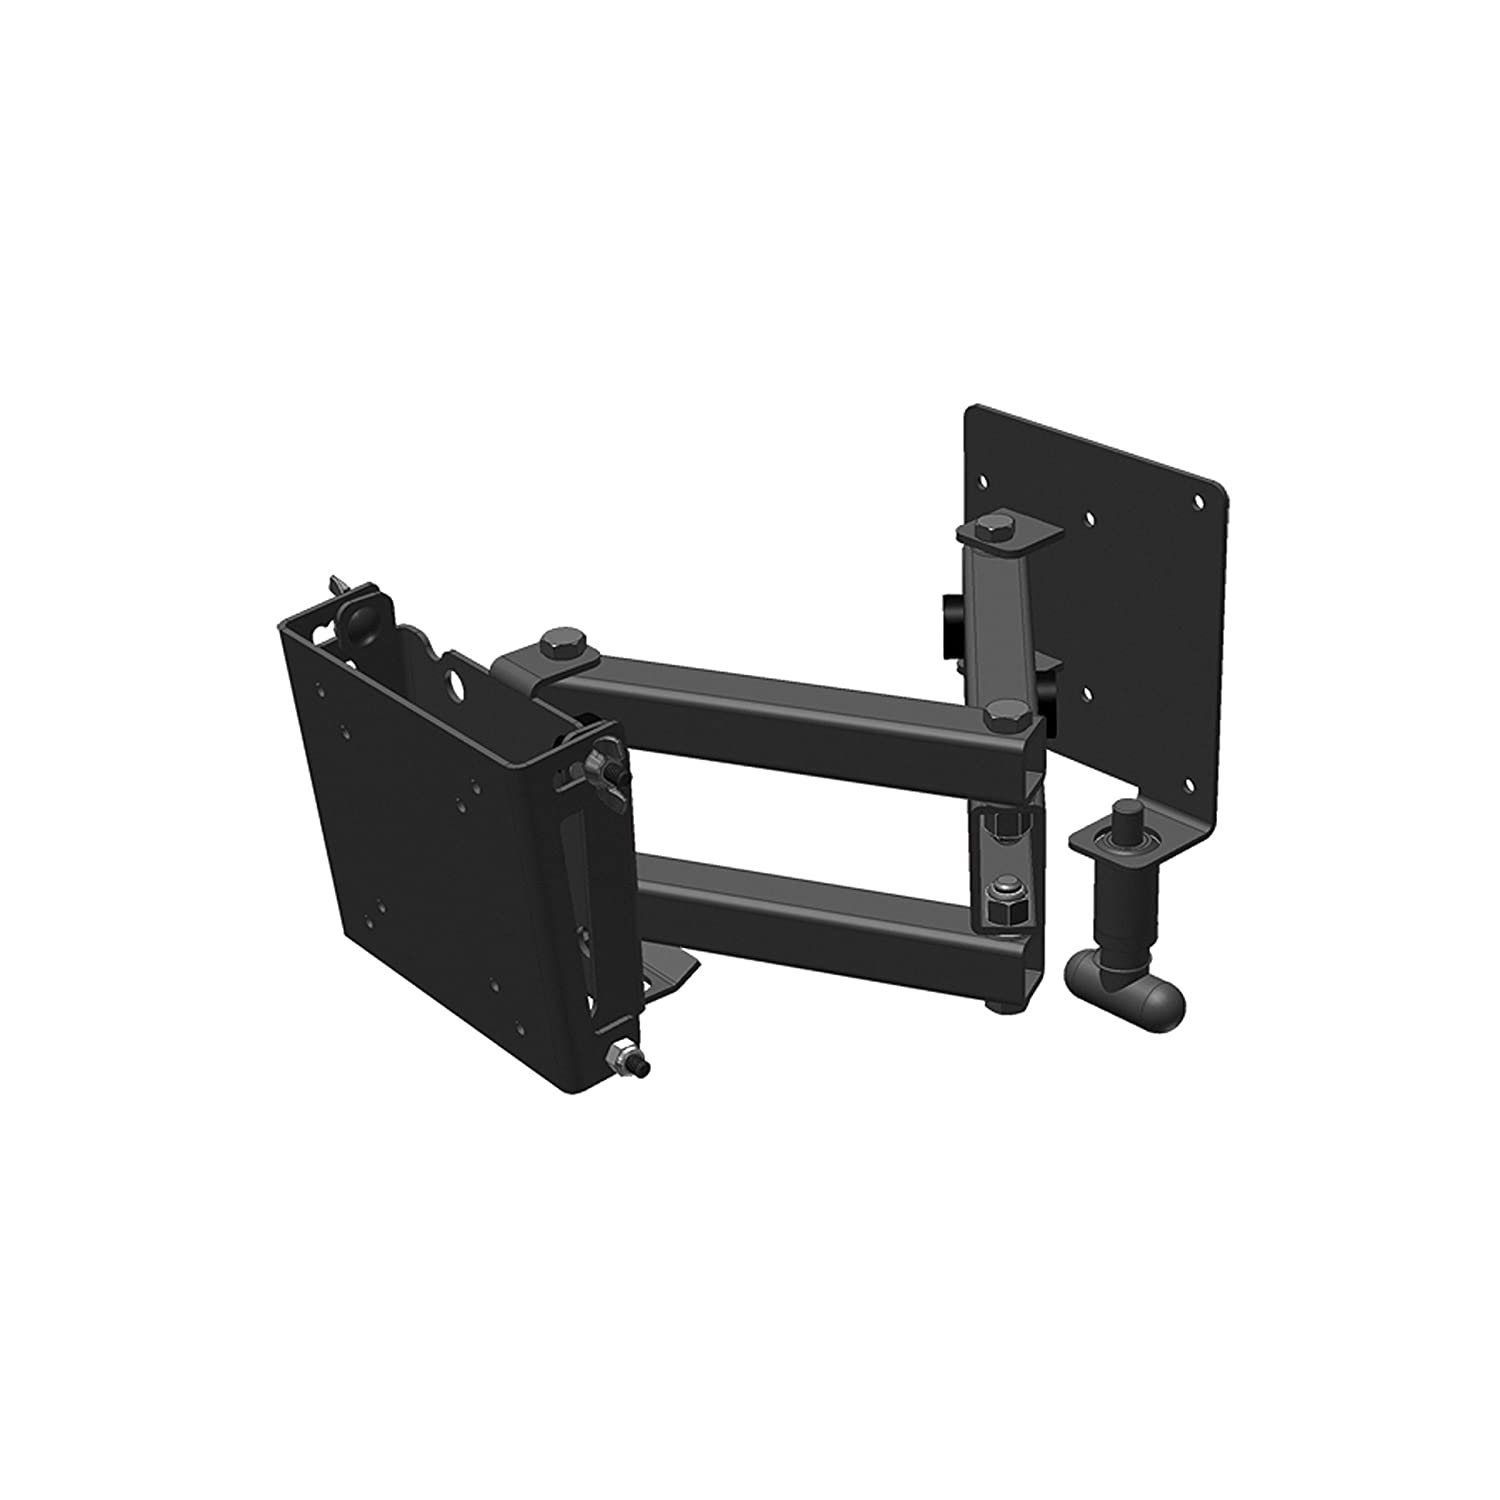 tv mounting brackets. amazon.com: morryde tv1-025h extending swivel tv wall mount - small: automotive tv mounting brackets